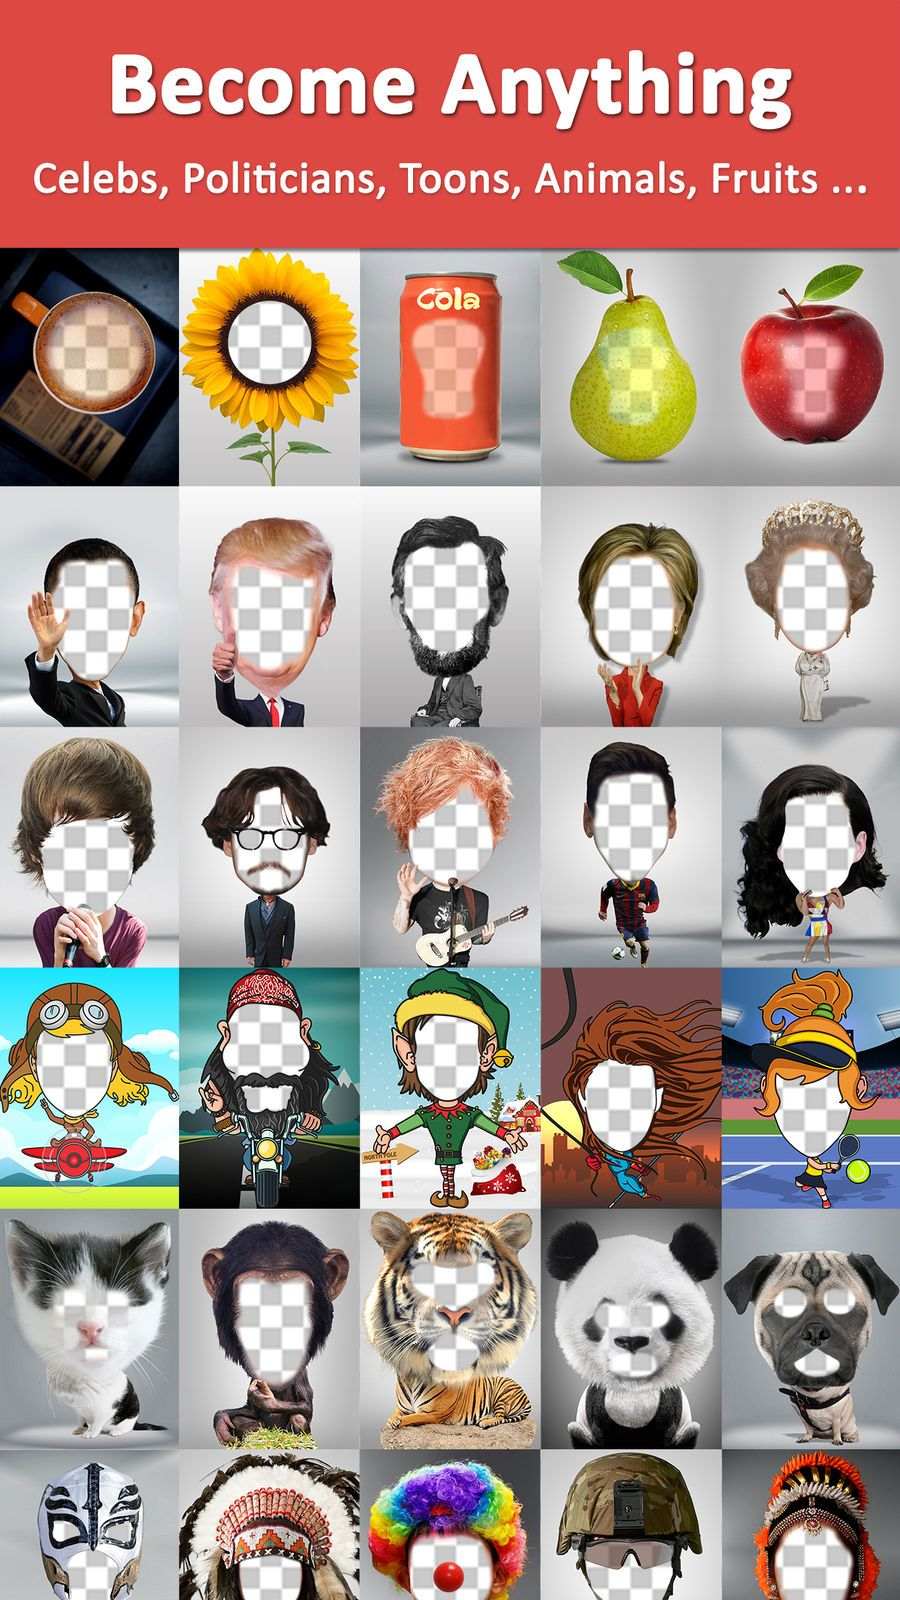 Acvifo hole to put face in change voice ios games